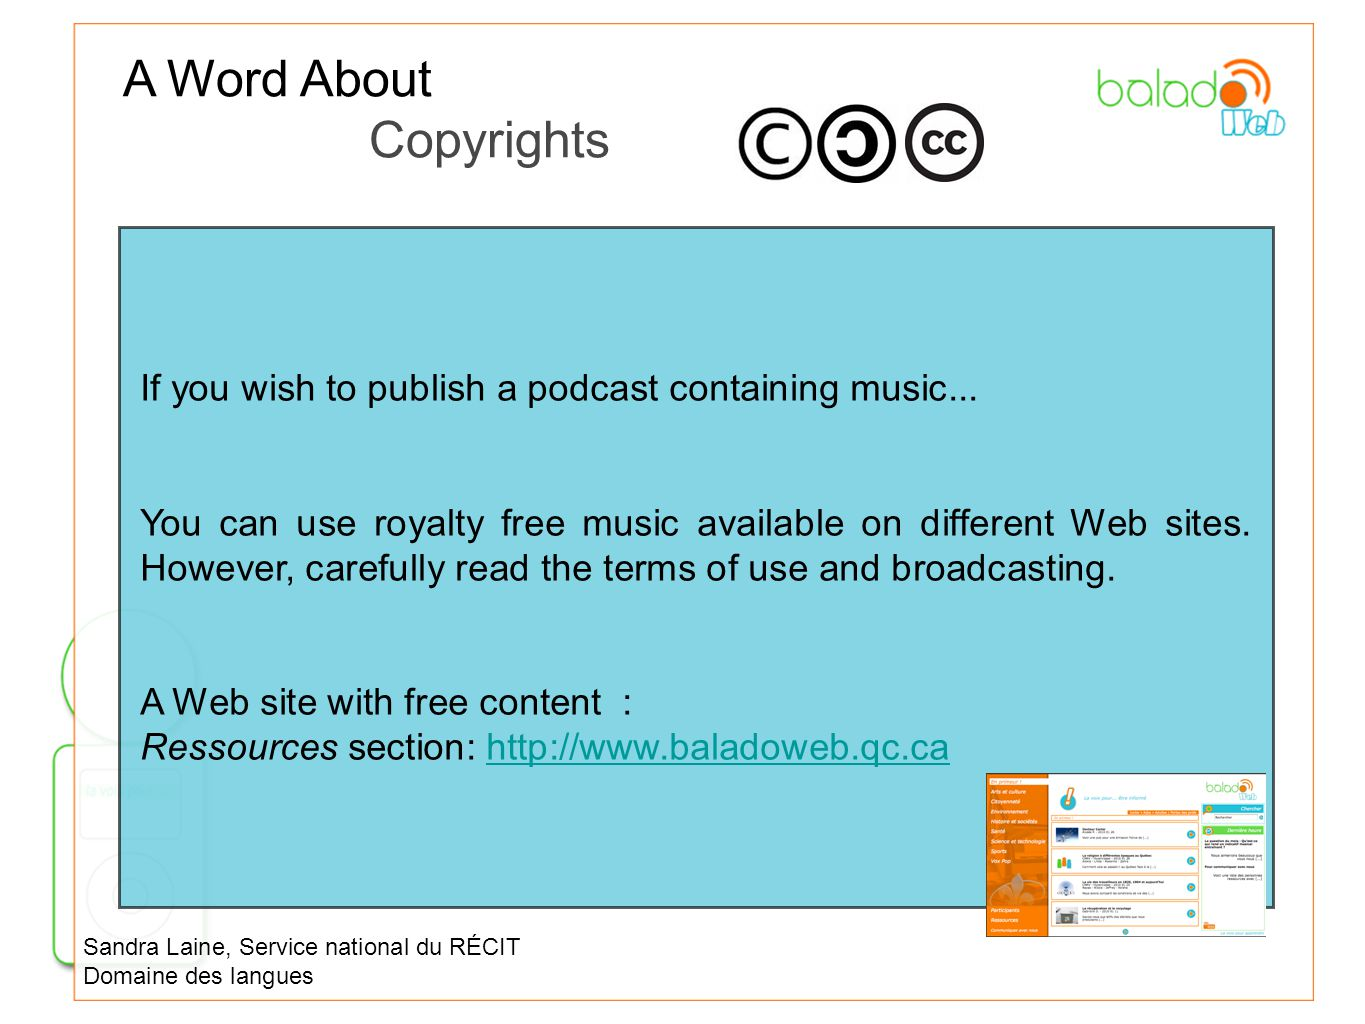 If you wish to publish a podcast containing music... You can use royalty free music available on different Web sites. However, carefully read the term